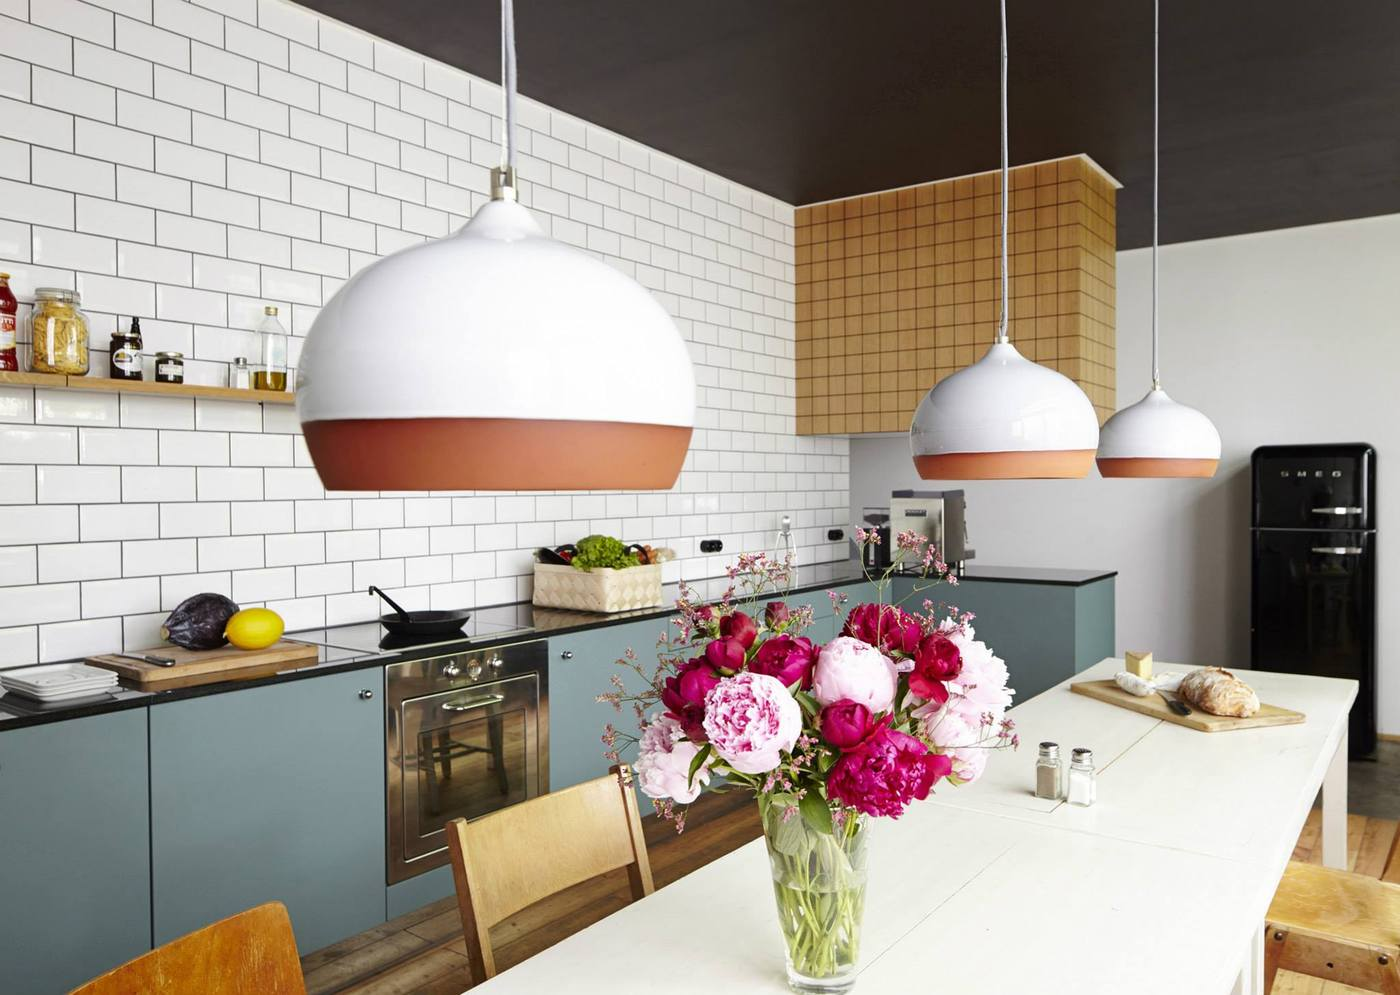 White subway tile kitchen designs are incredibly universal urban view in gallery compare these two amazingly similar but different kitchens 2 thumb 630xauto 53803 white subway tile kitchen dailygadgetfo Images